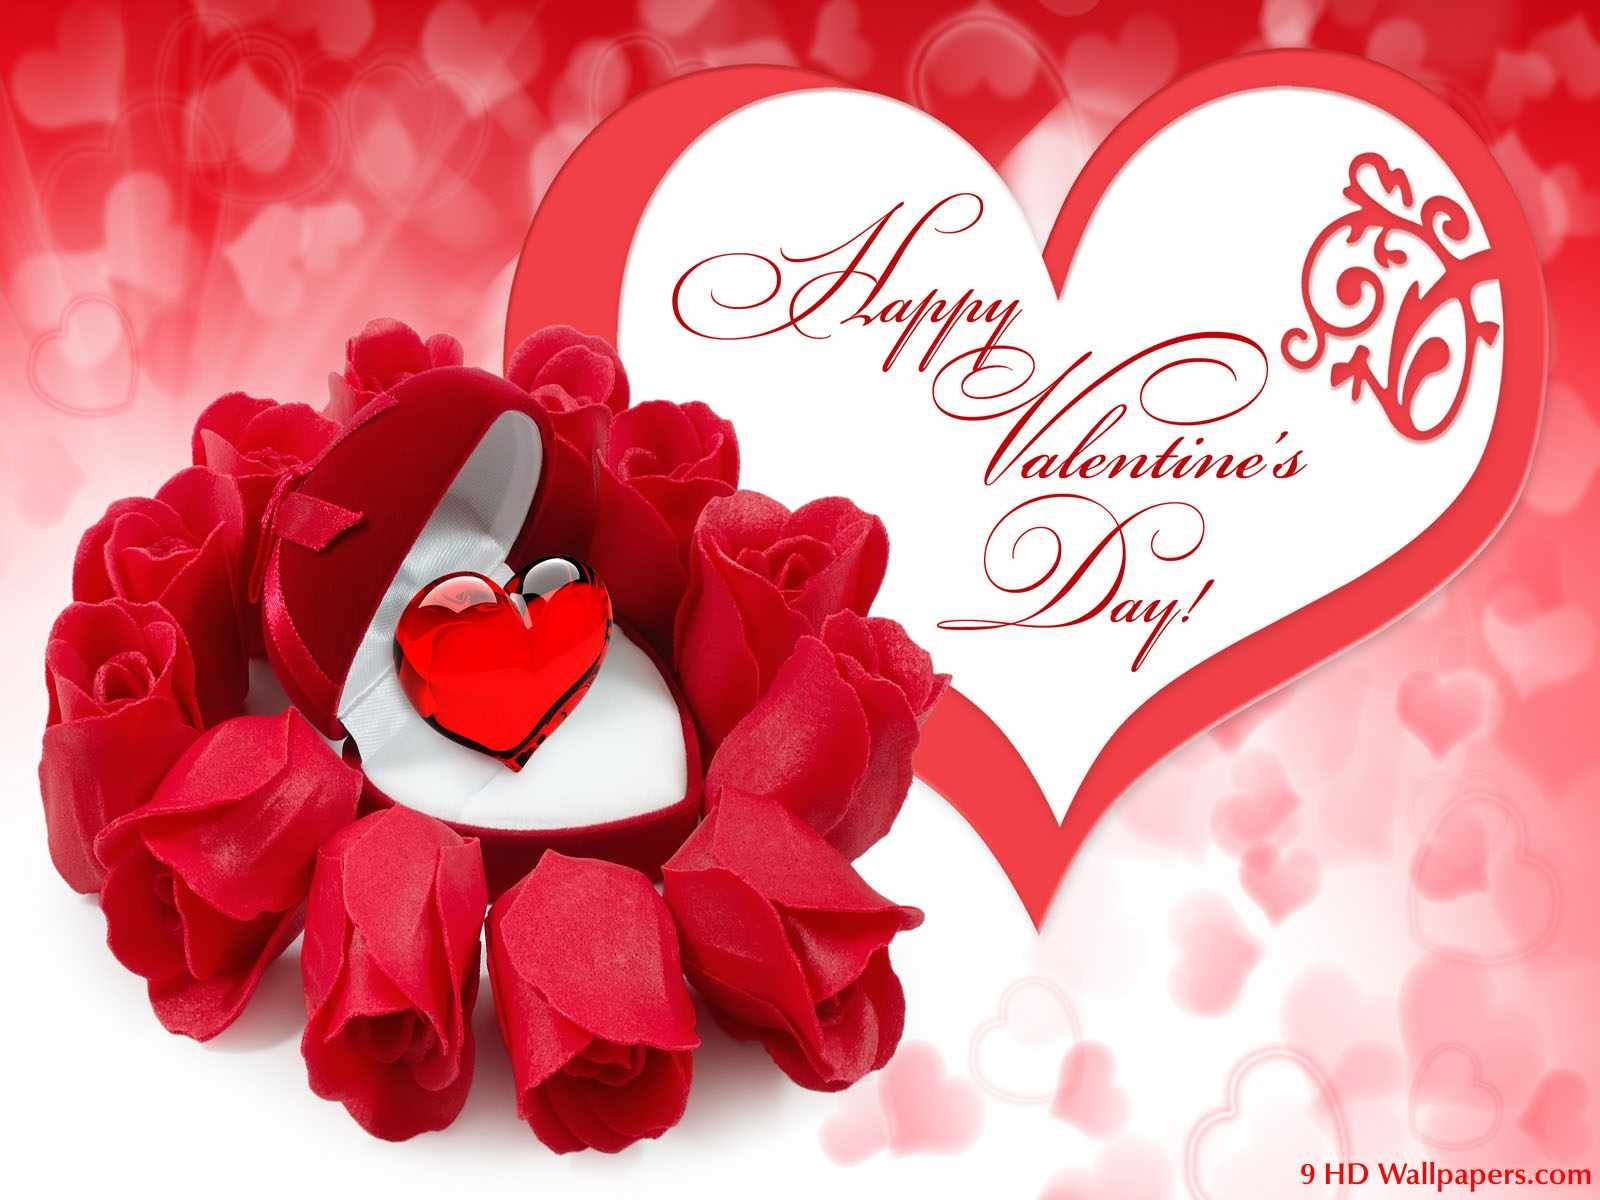 Valentinesdaygreetingsforfriends Valentines Day Greeting